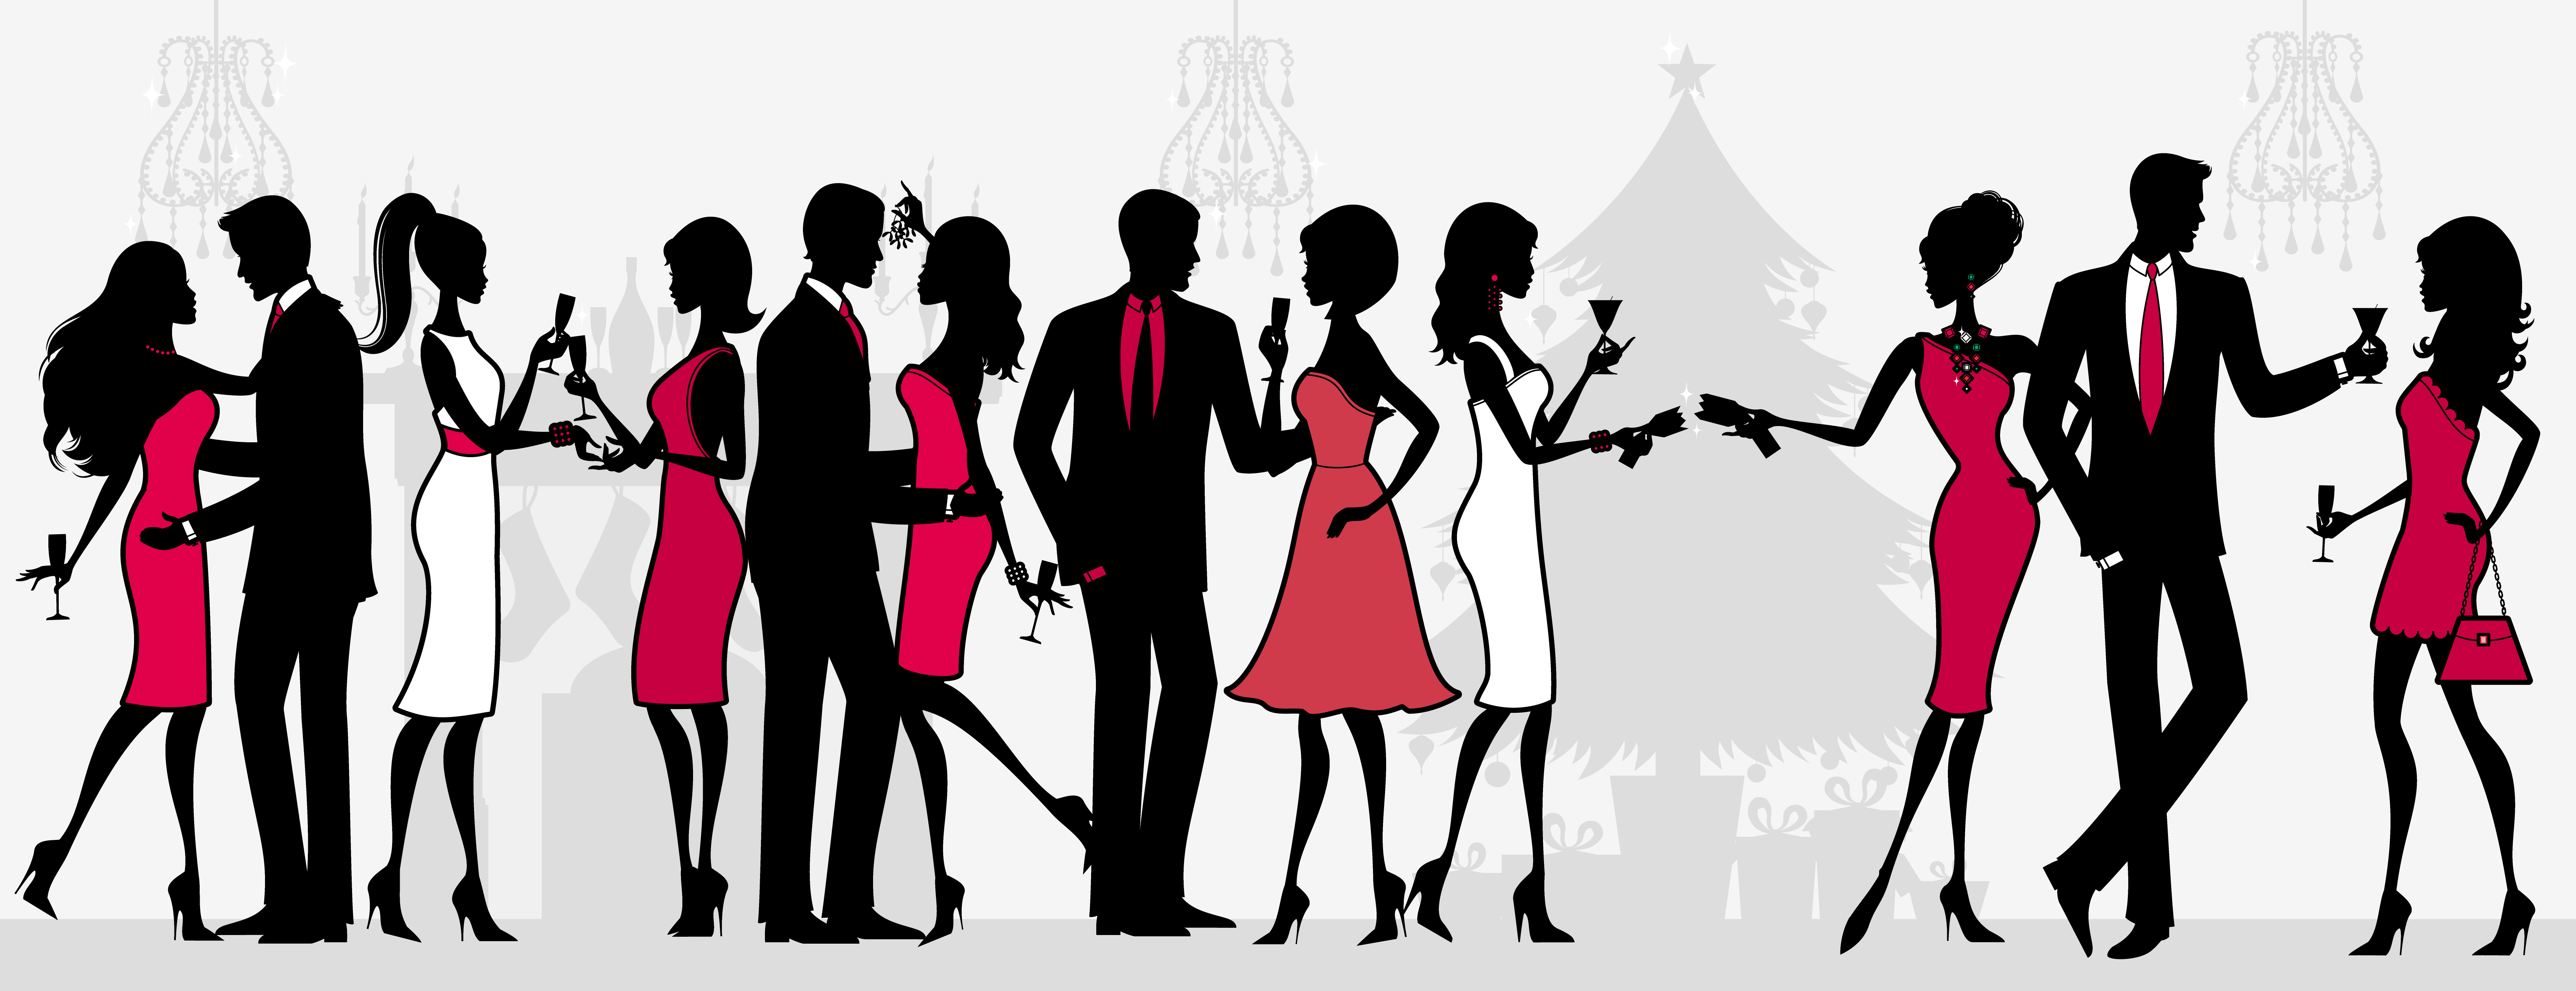 7456x2868 Party Clipart Event